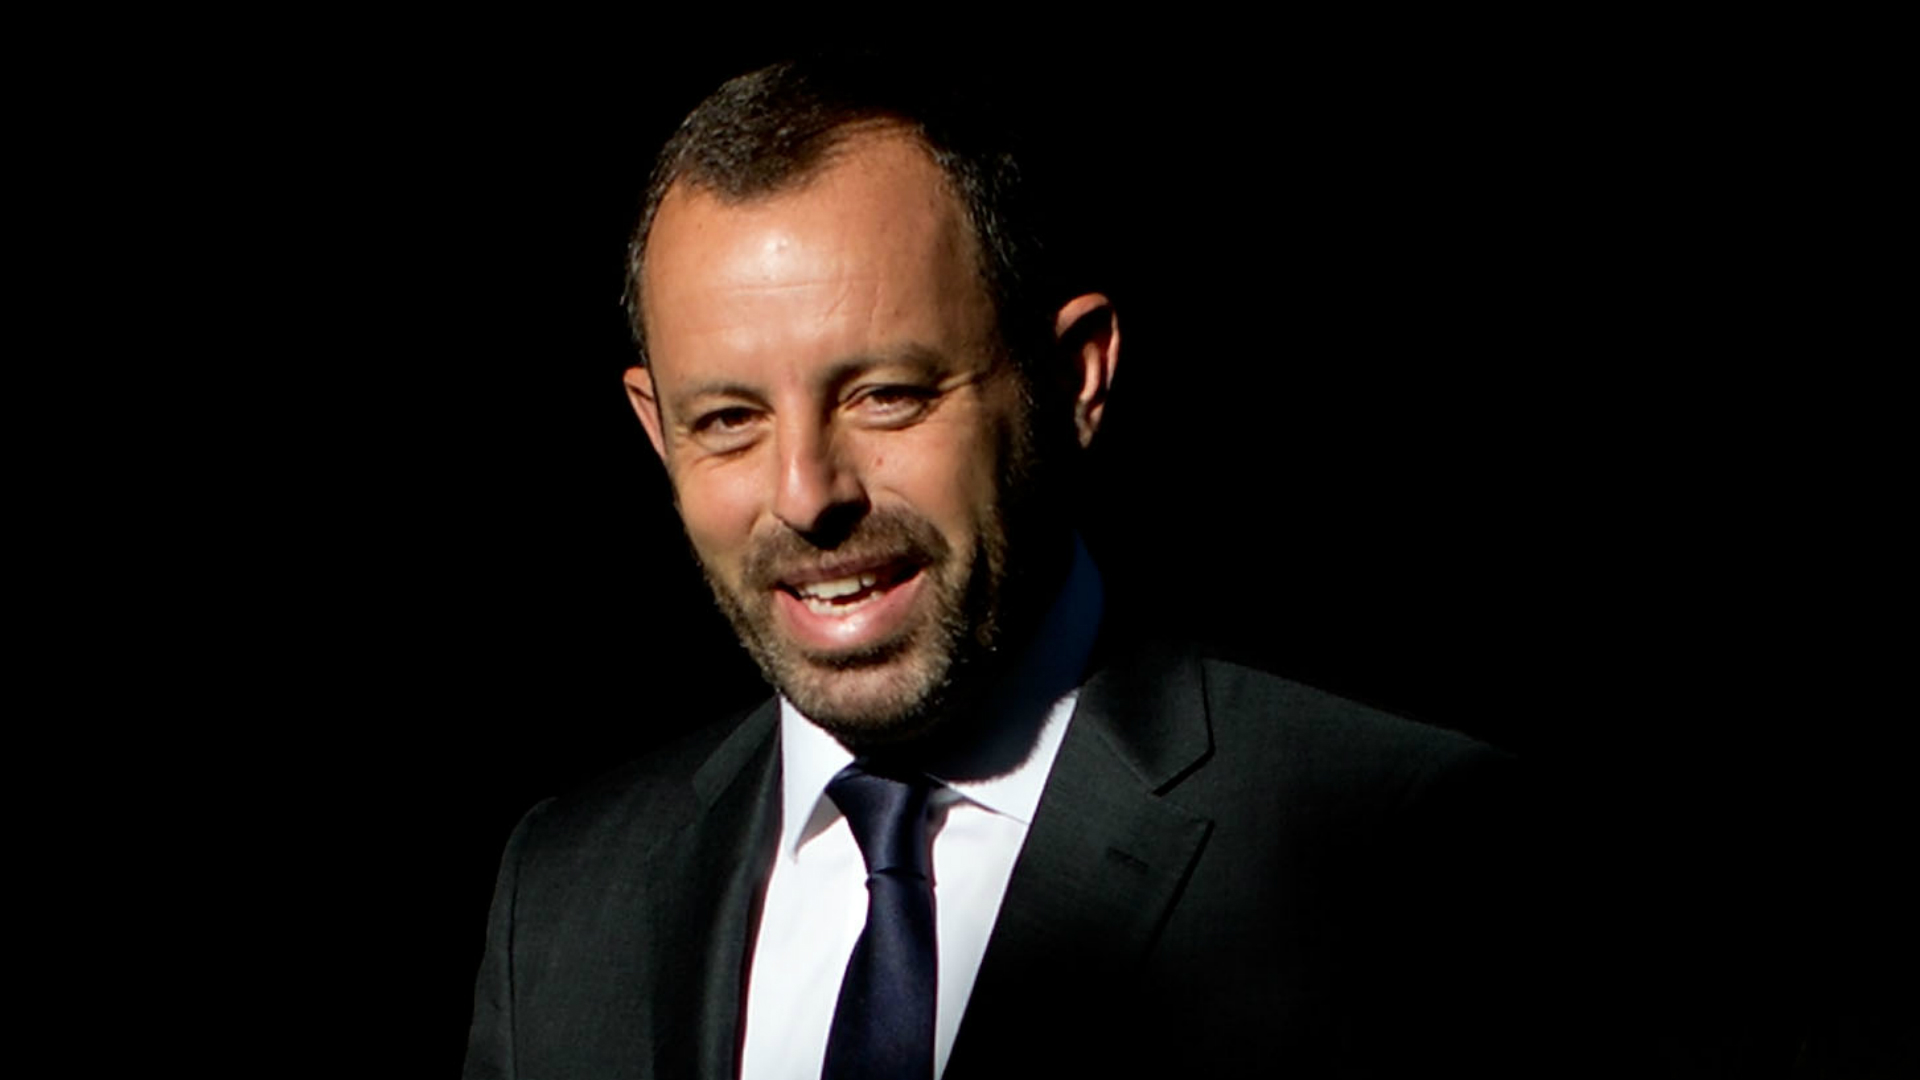 Former Barcelona chief Rosell acquitted of money laundering